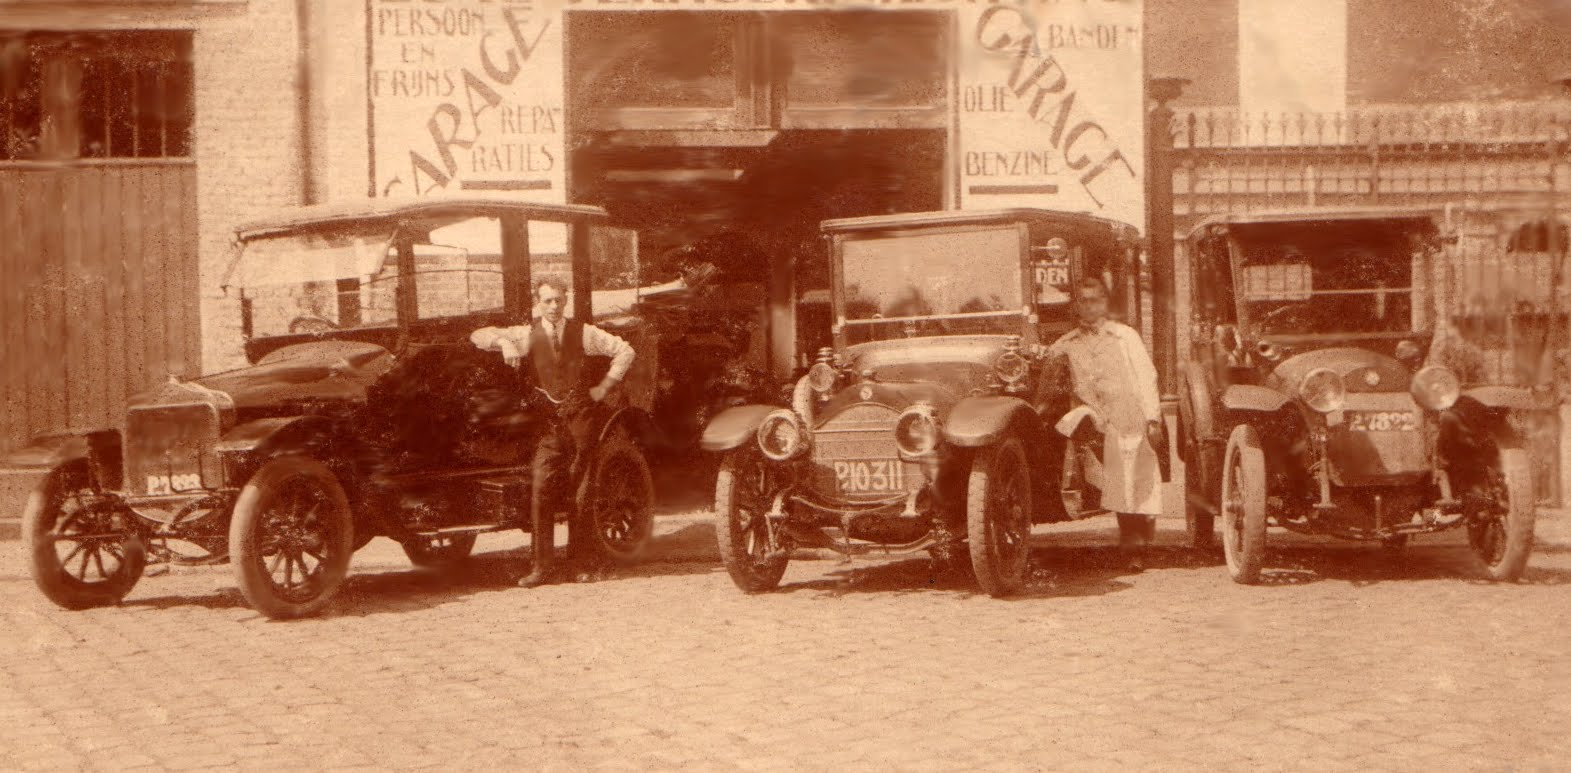 1925 Ford- Mercedes-Minerva  garage Persoon